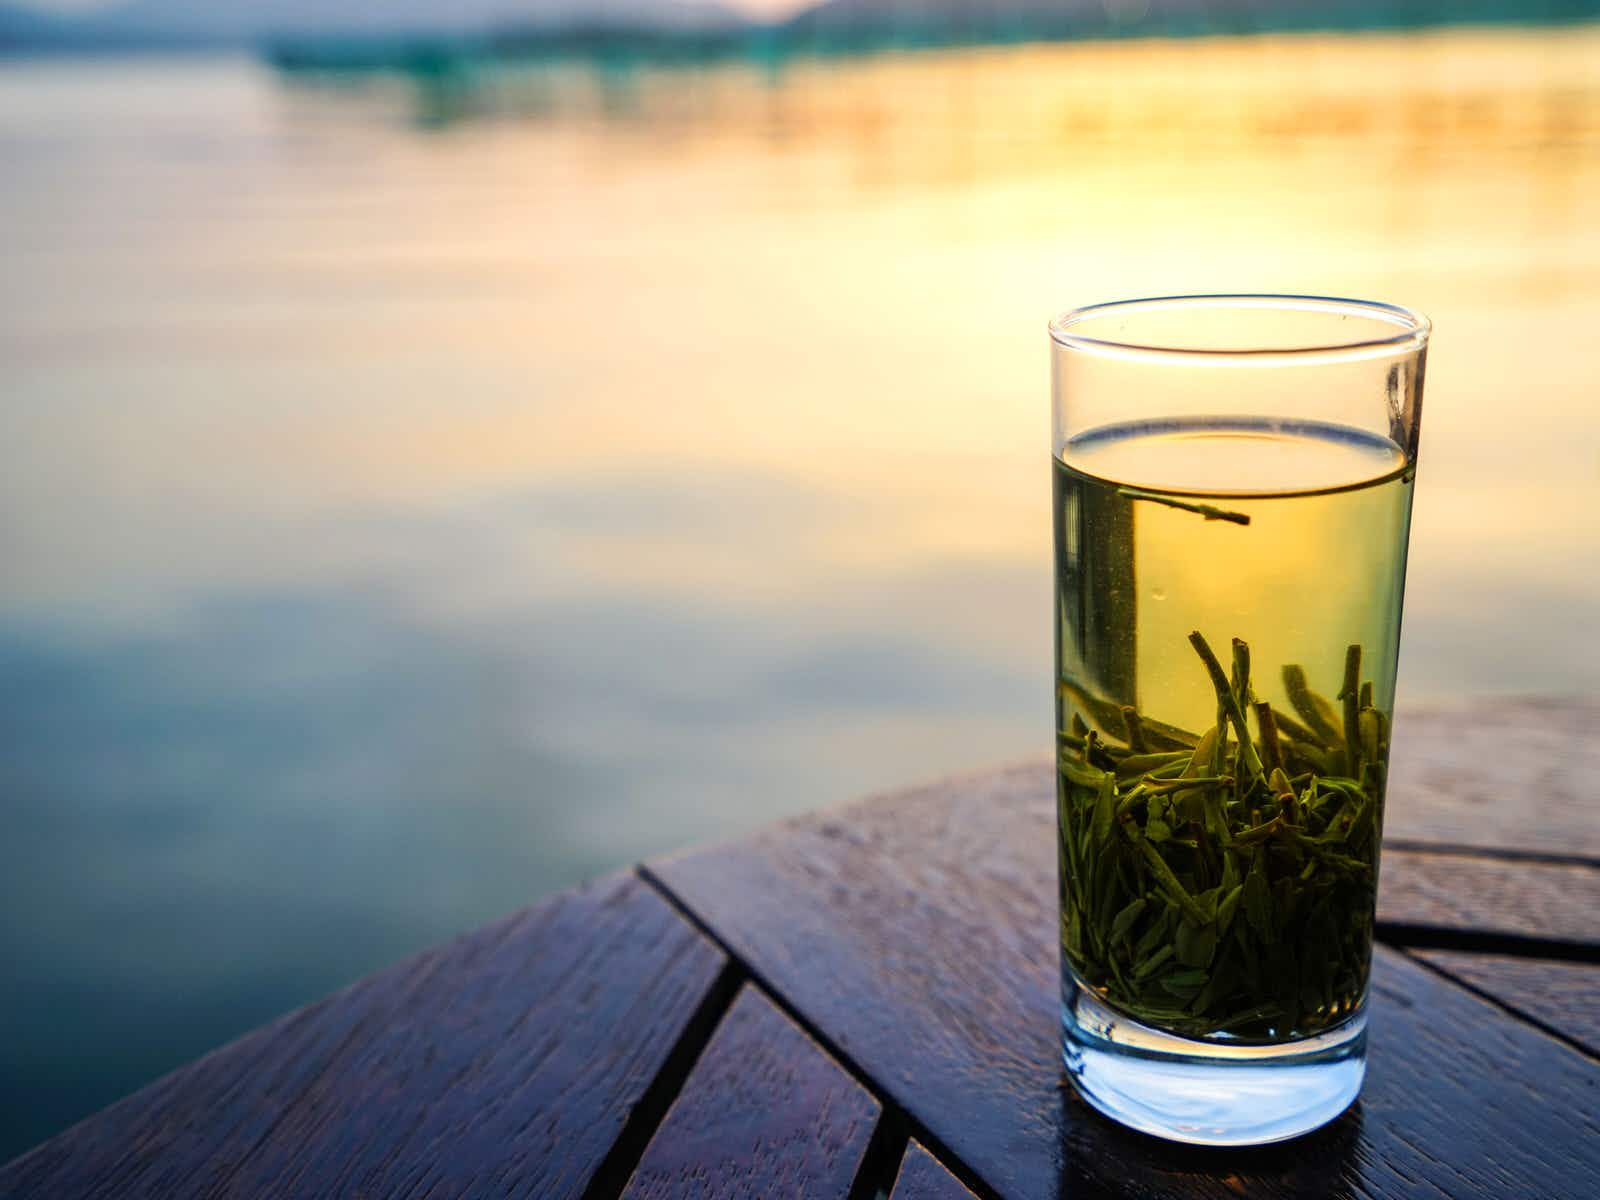 A cup of green tea settled in a tall, clear glass, with sunset reflecting in a pond in the background.